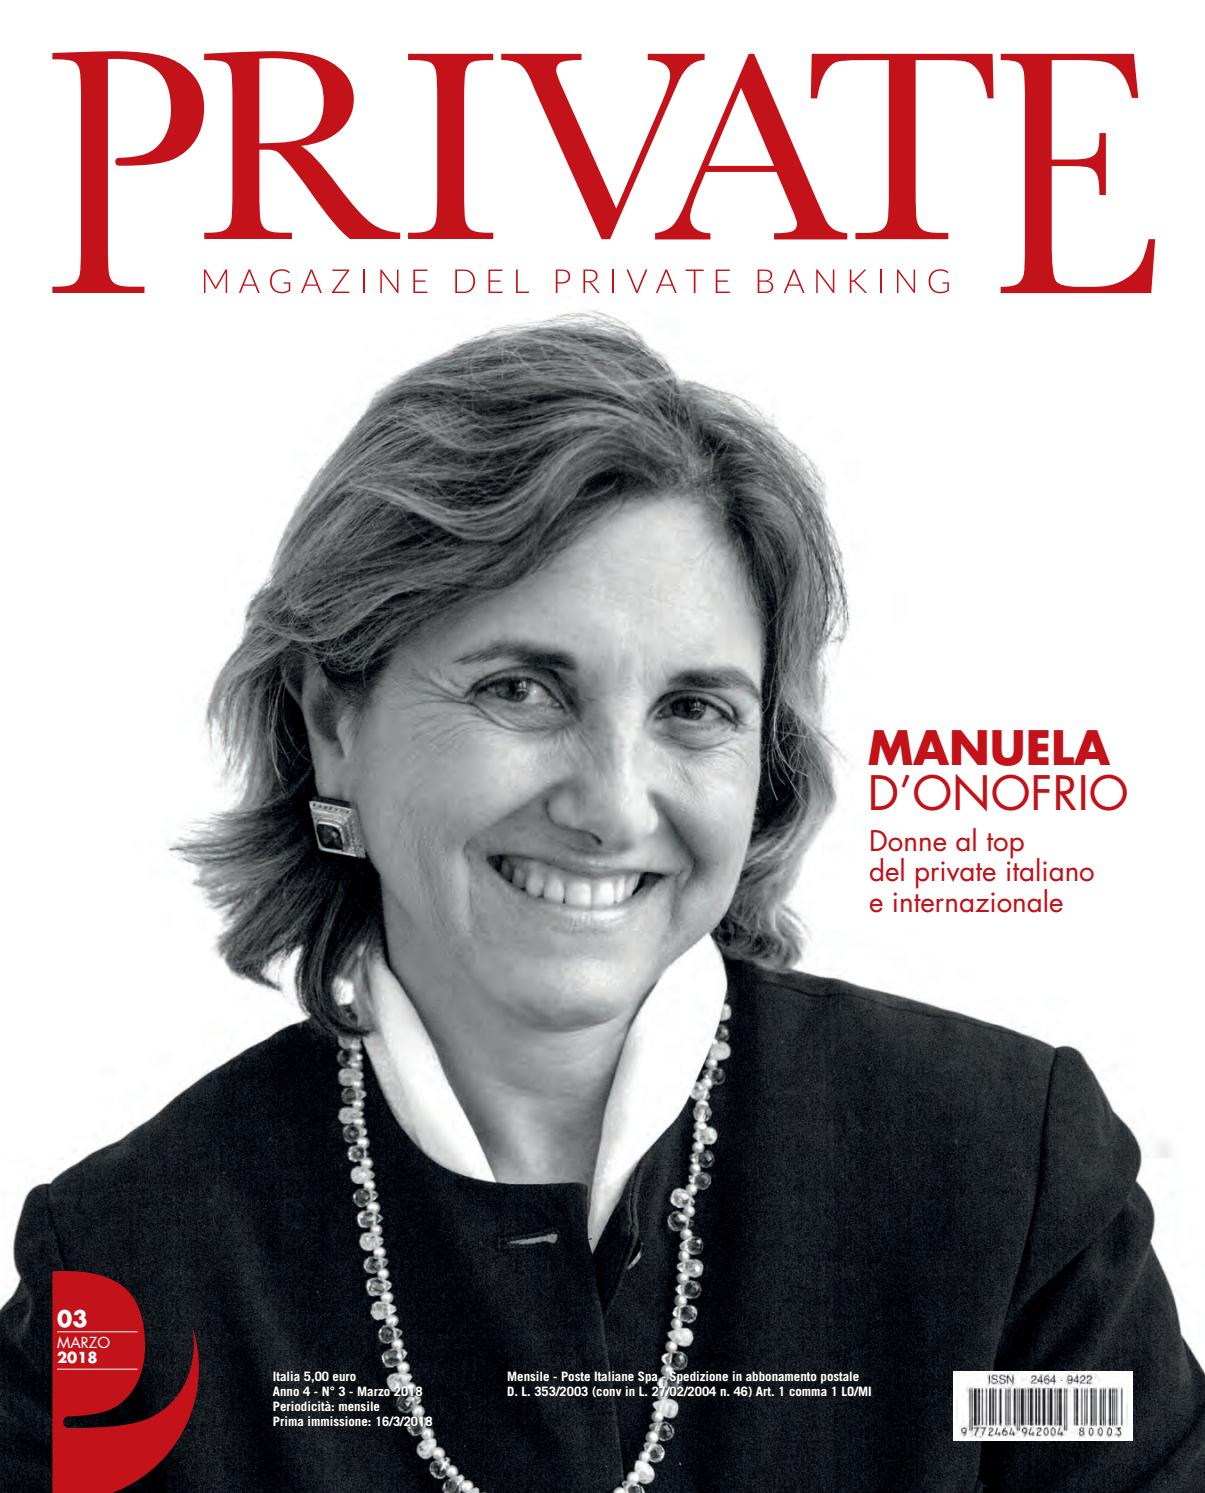 PRIVATE 03 - MANUELA D ONOFRIO by Blue Financial Communication - issuu 3b4f9346f0c7